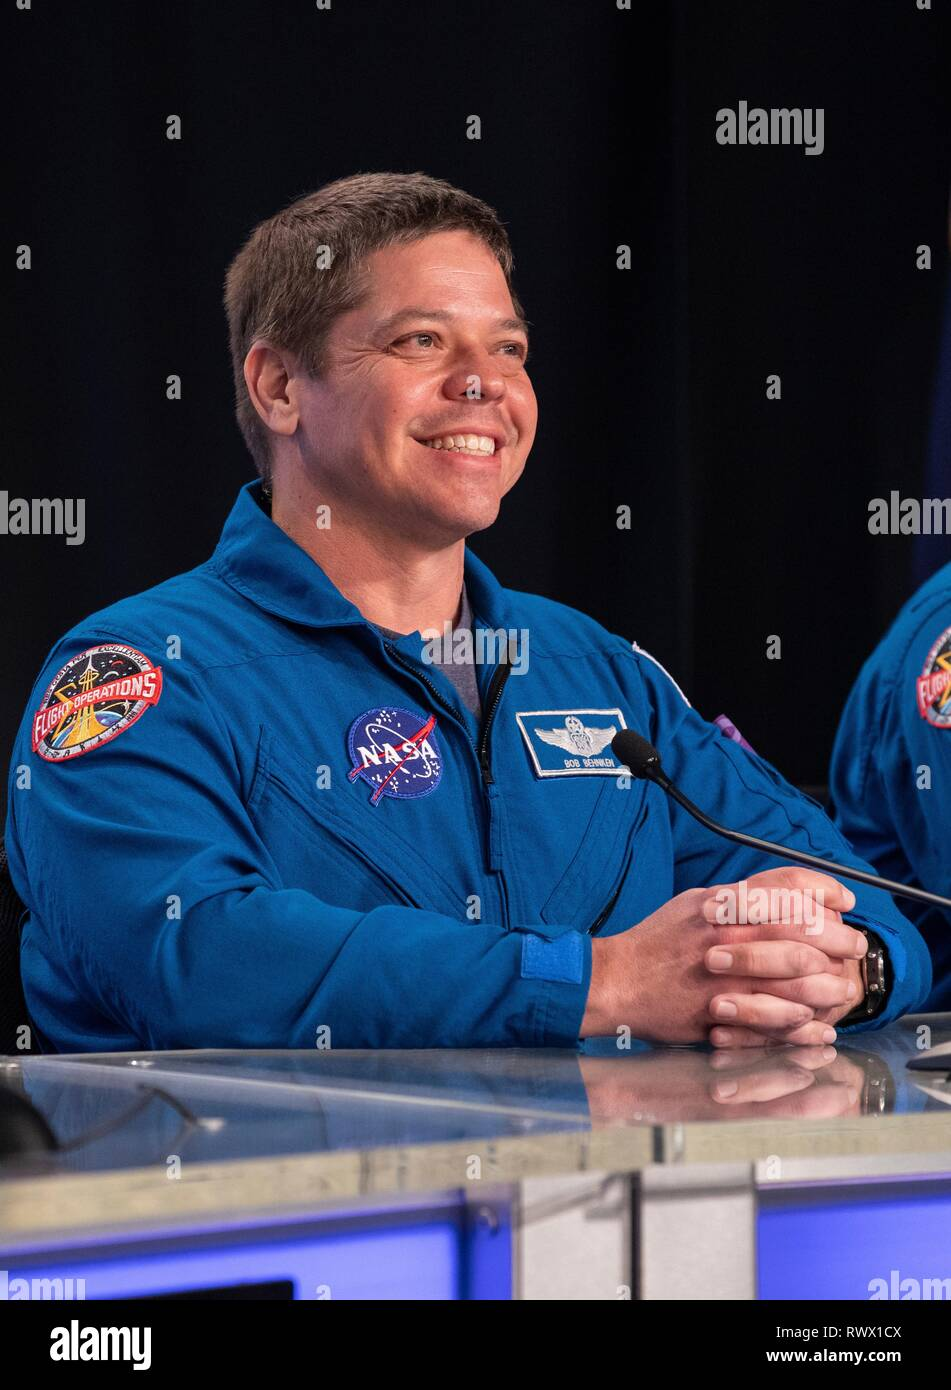 NASA astronaut Bob Behnken addresses members of the media during a post launch news conference following the historic launch of the first commercial crew capsule Demo-1 at the Kennedy Space Center March 2, 2019 in Cape Canaveral, Florida. - Stock Image